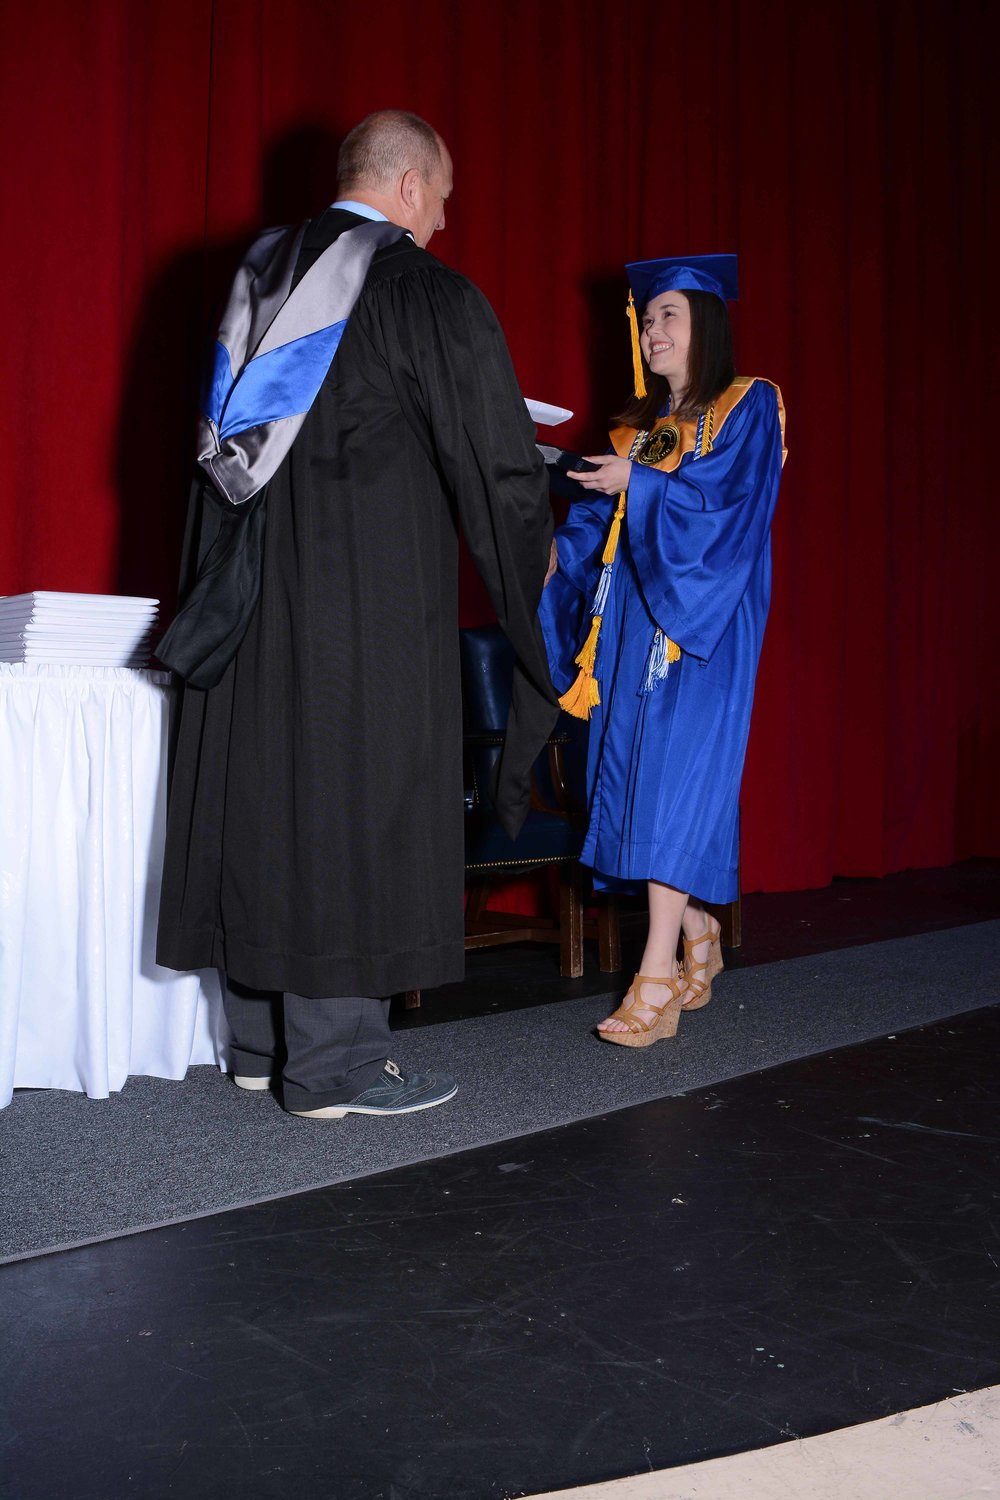 May14 Commencement92.jpg